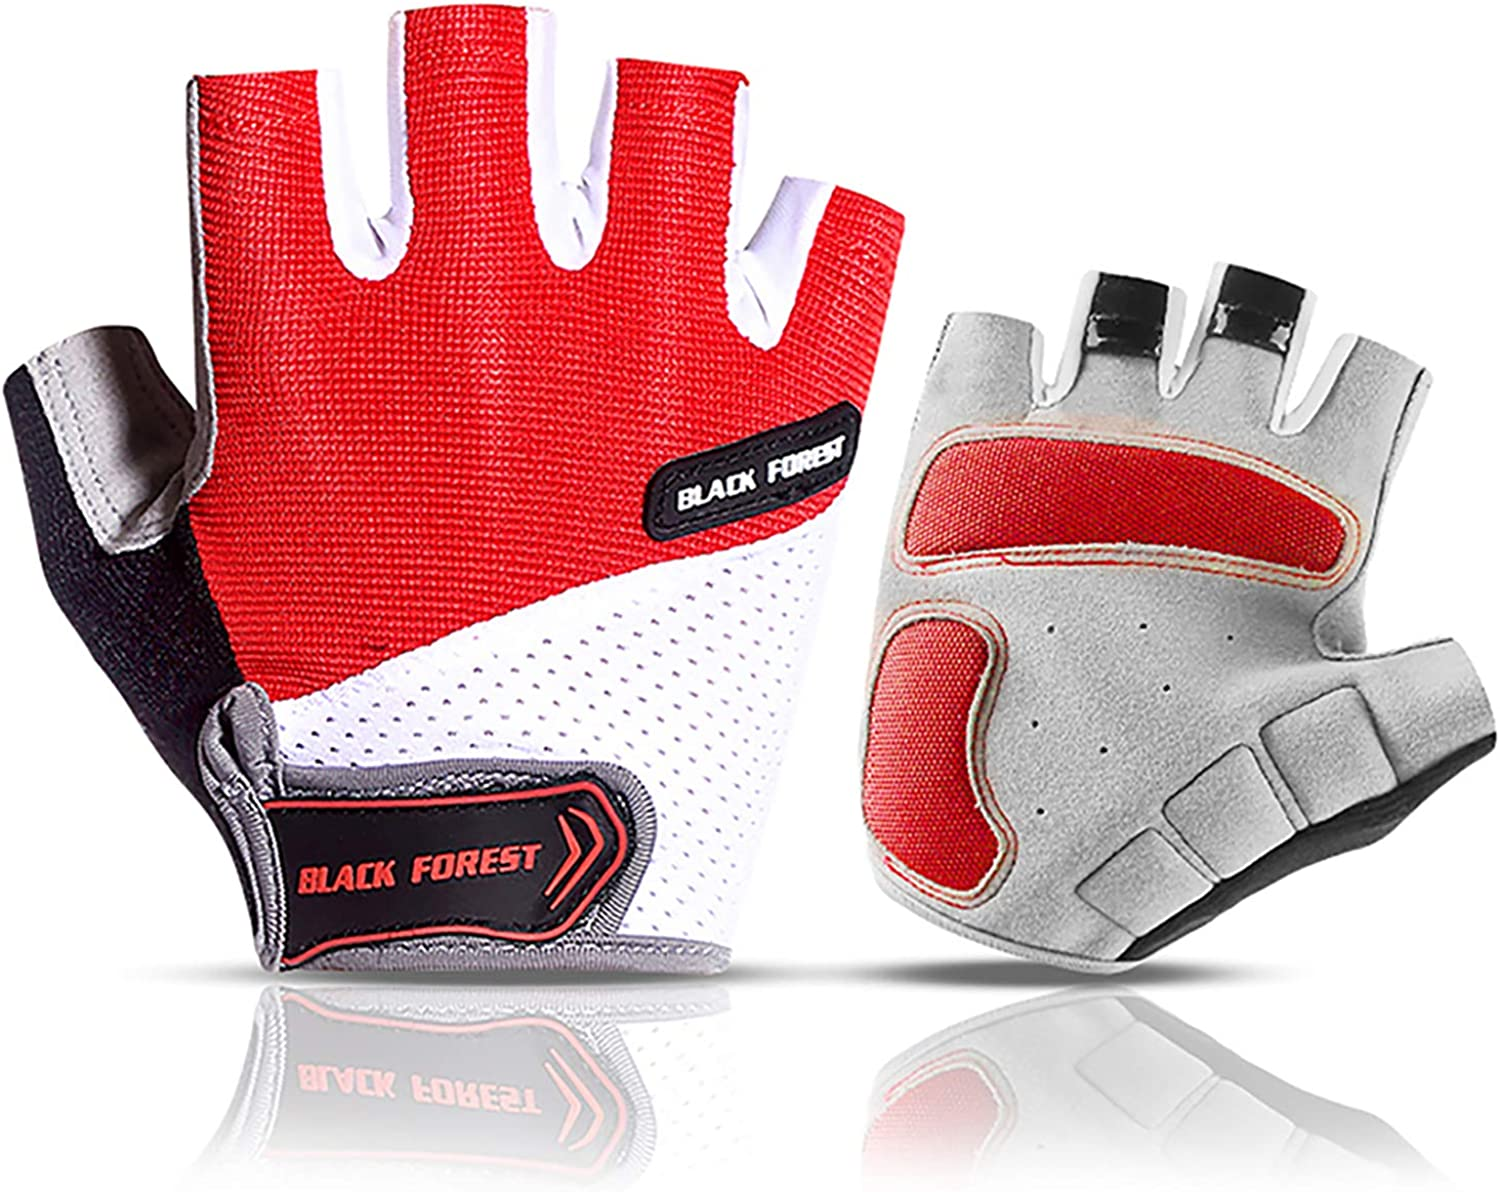 Cycling Gloves Mountain Bike//Road Bike Riding Gloves Half Finger Biking Gloves Gym Gloves Anti Slip Shock Absorbing Padded Breathable Half Finger Short Sports Gloves Fits for Men or Women